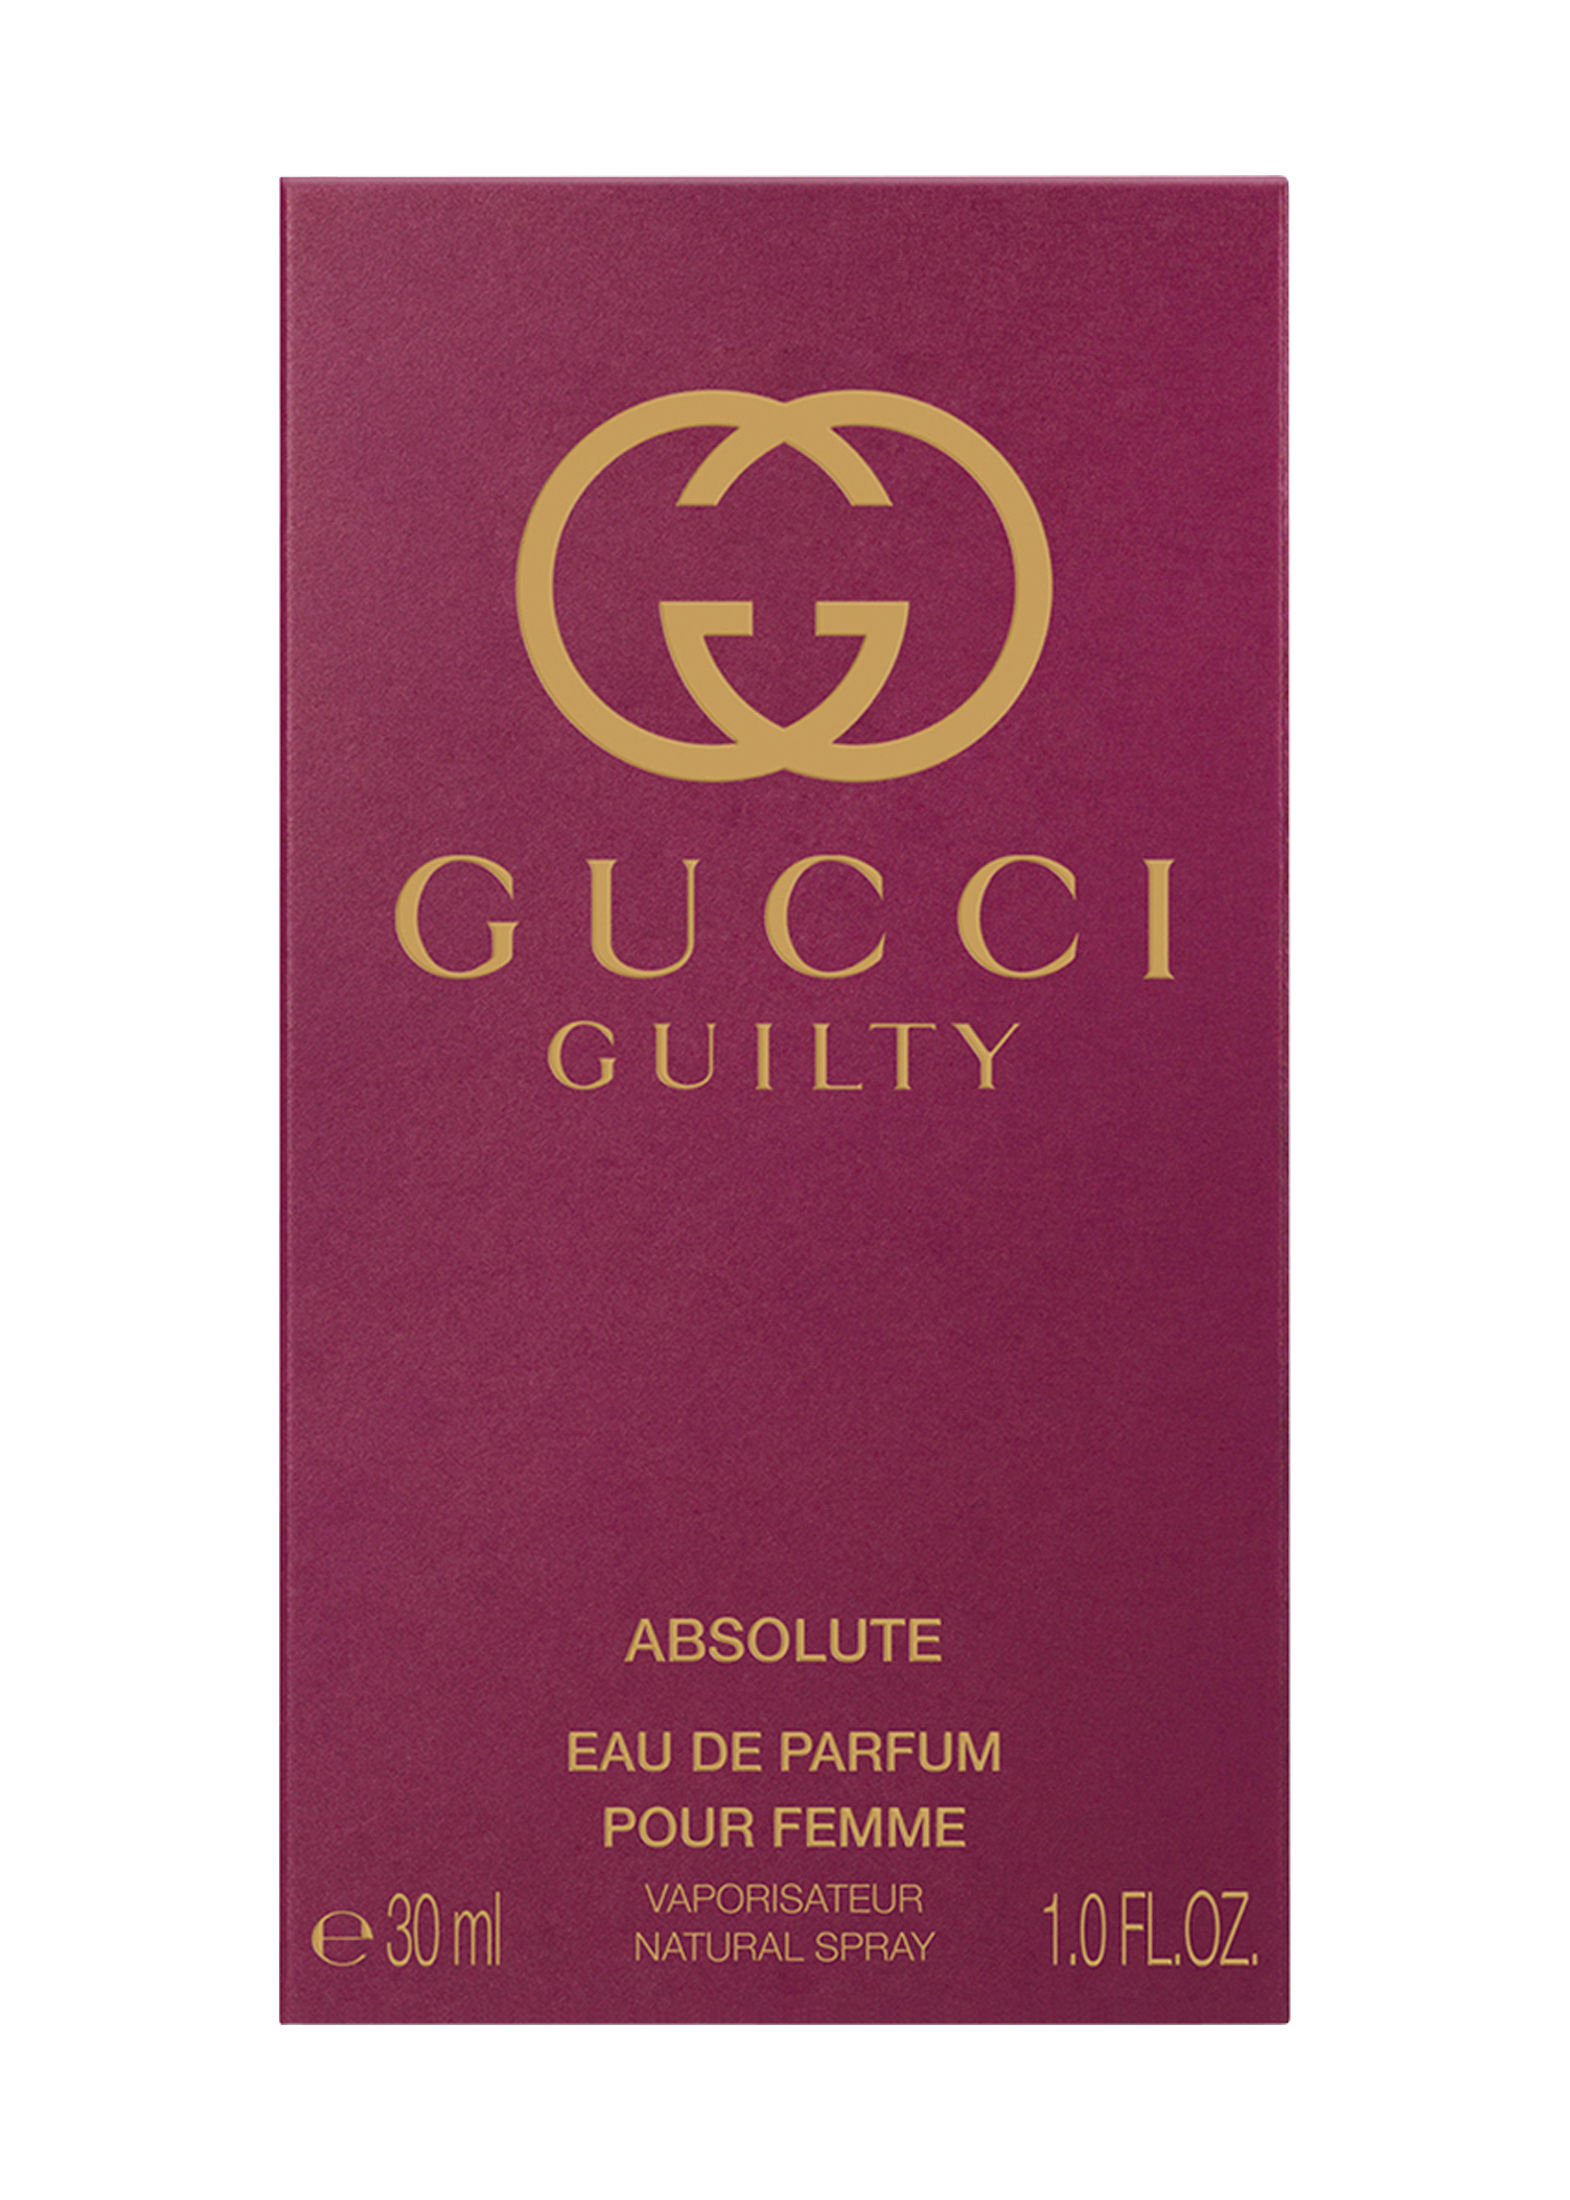 GUCCI GUILTY ABSOLUTE PF 30ML image number 1